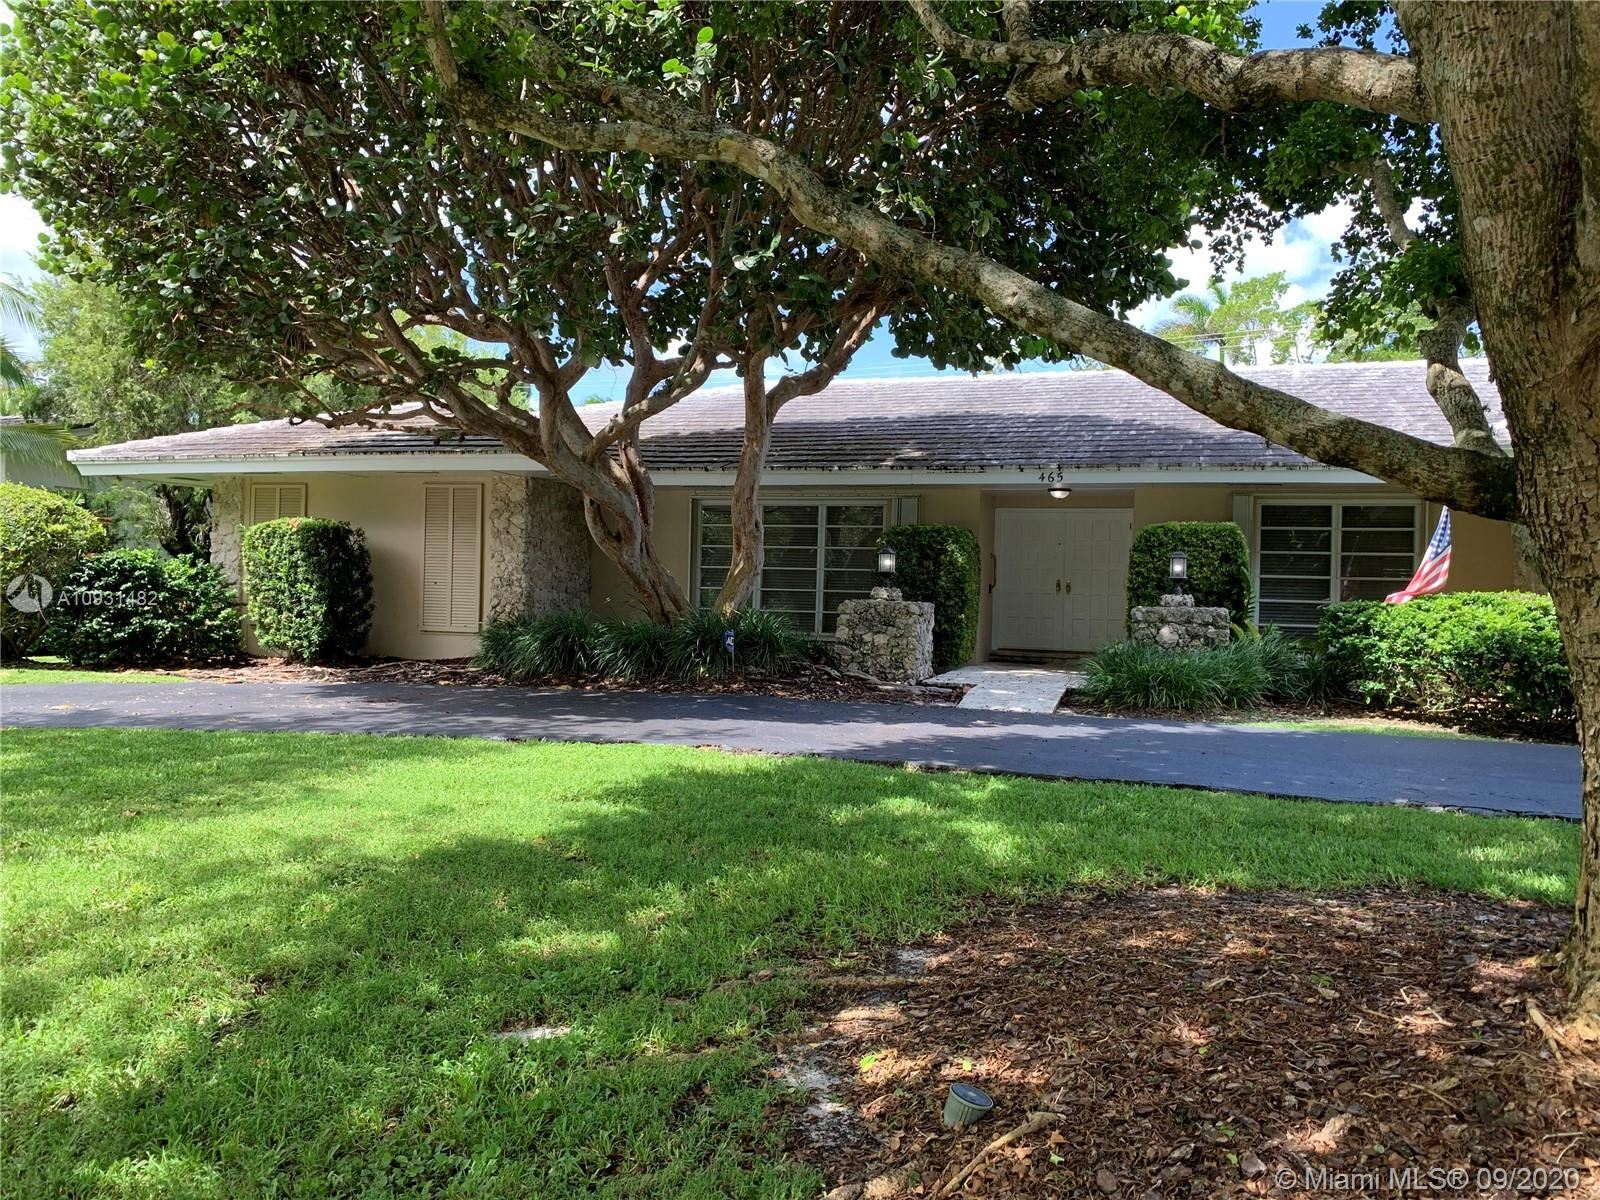 465 Campana Ave, Coral Gables, FL 33156 - #: A10931482